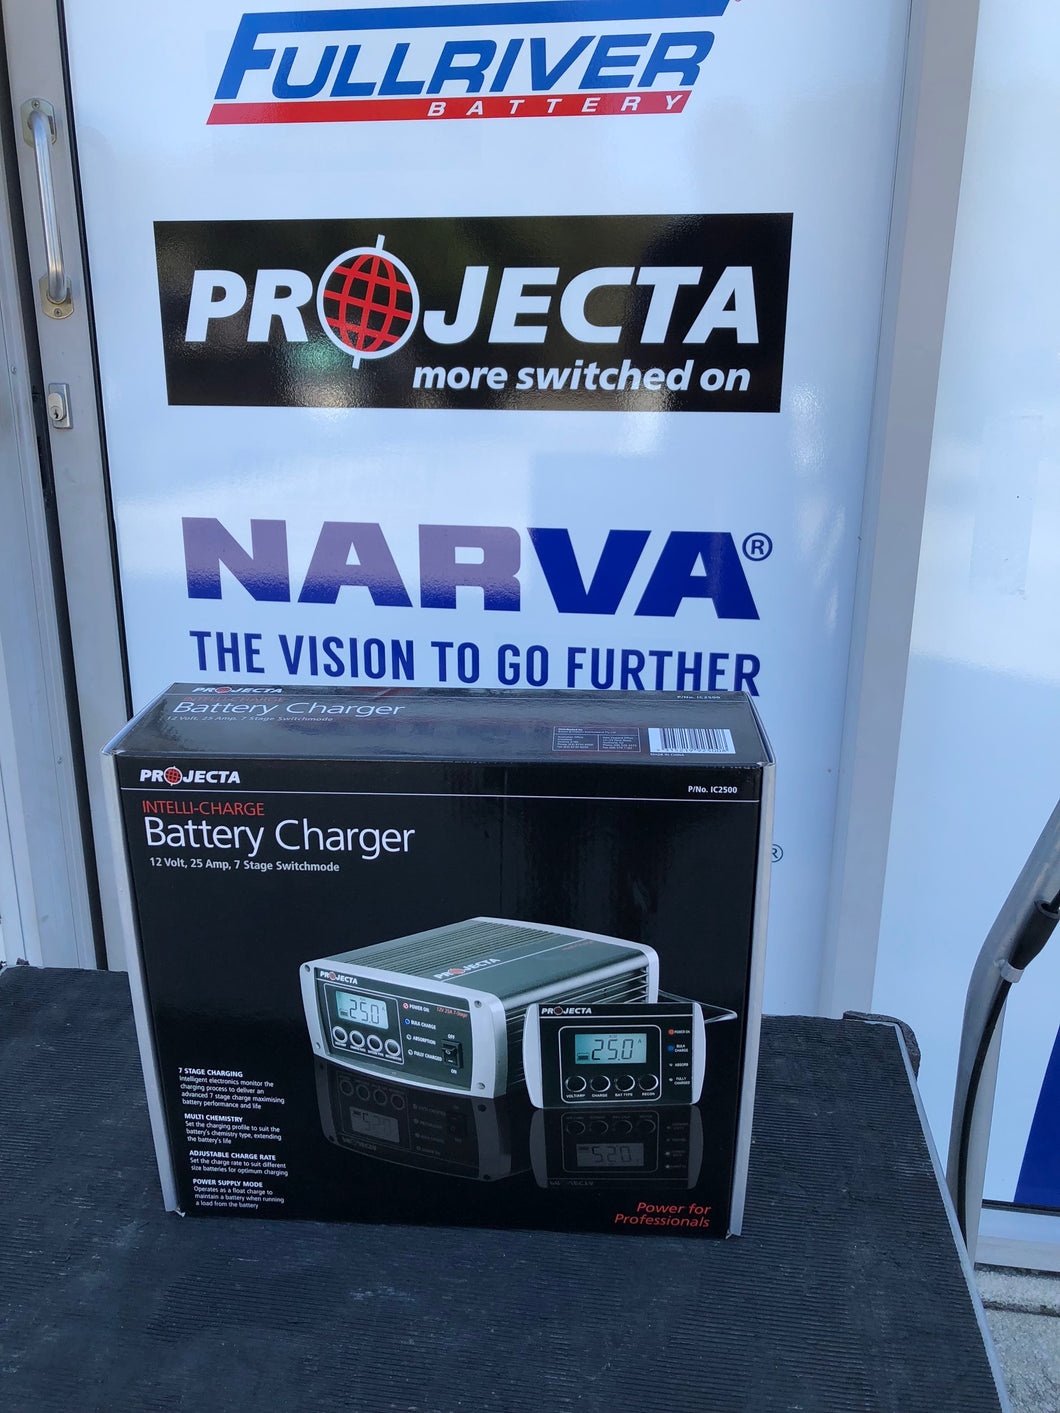 ic2500 projecta intelli charge battery charger